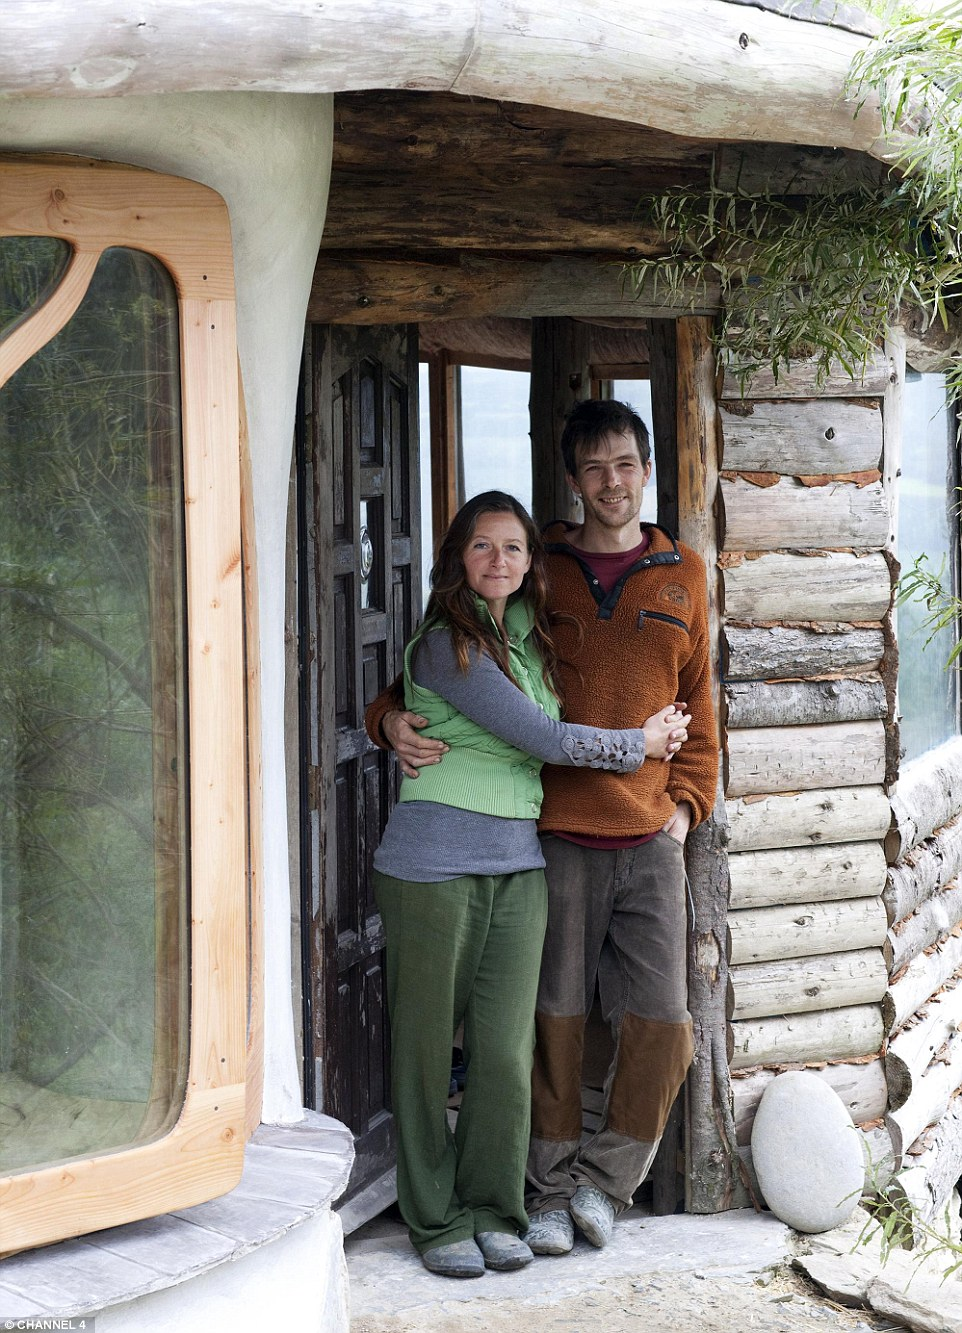 Sustainable home built in eco-community. A British prime-time TV show explores a family's relocation to a pioneering village in Wales.